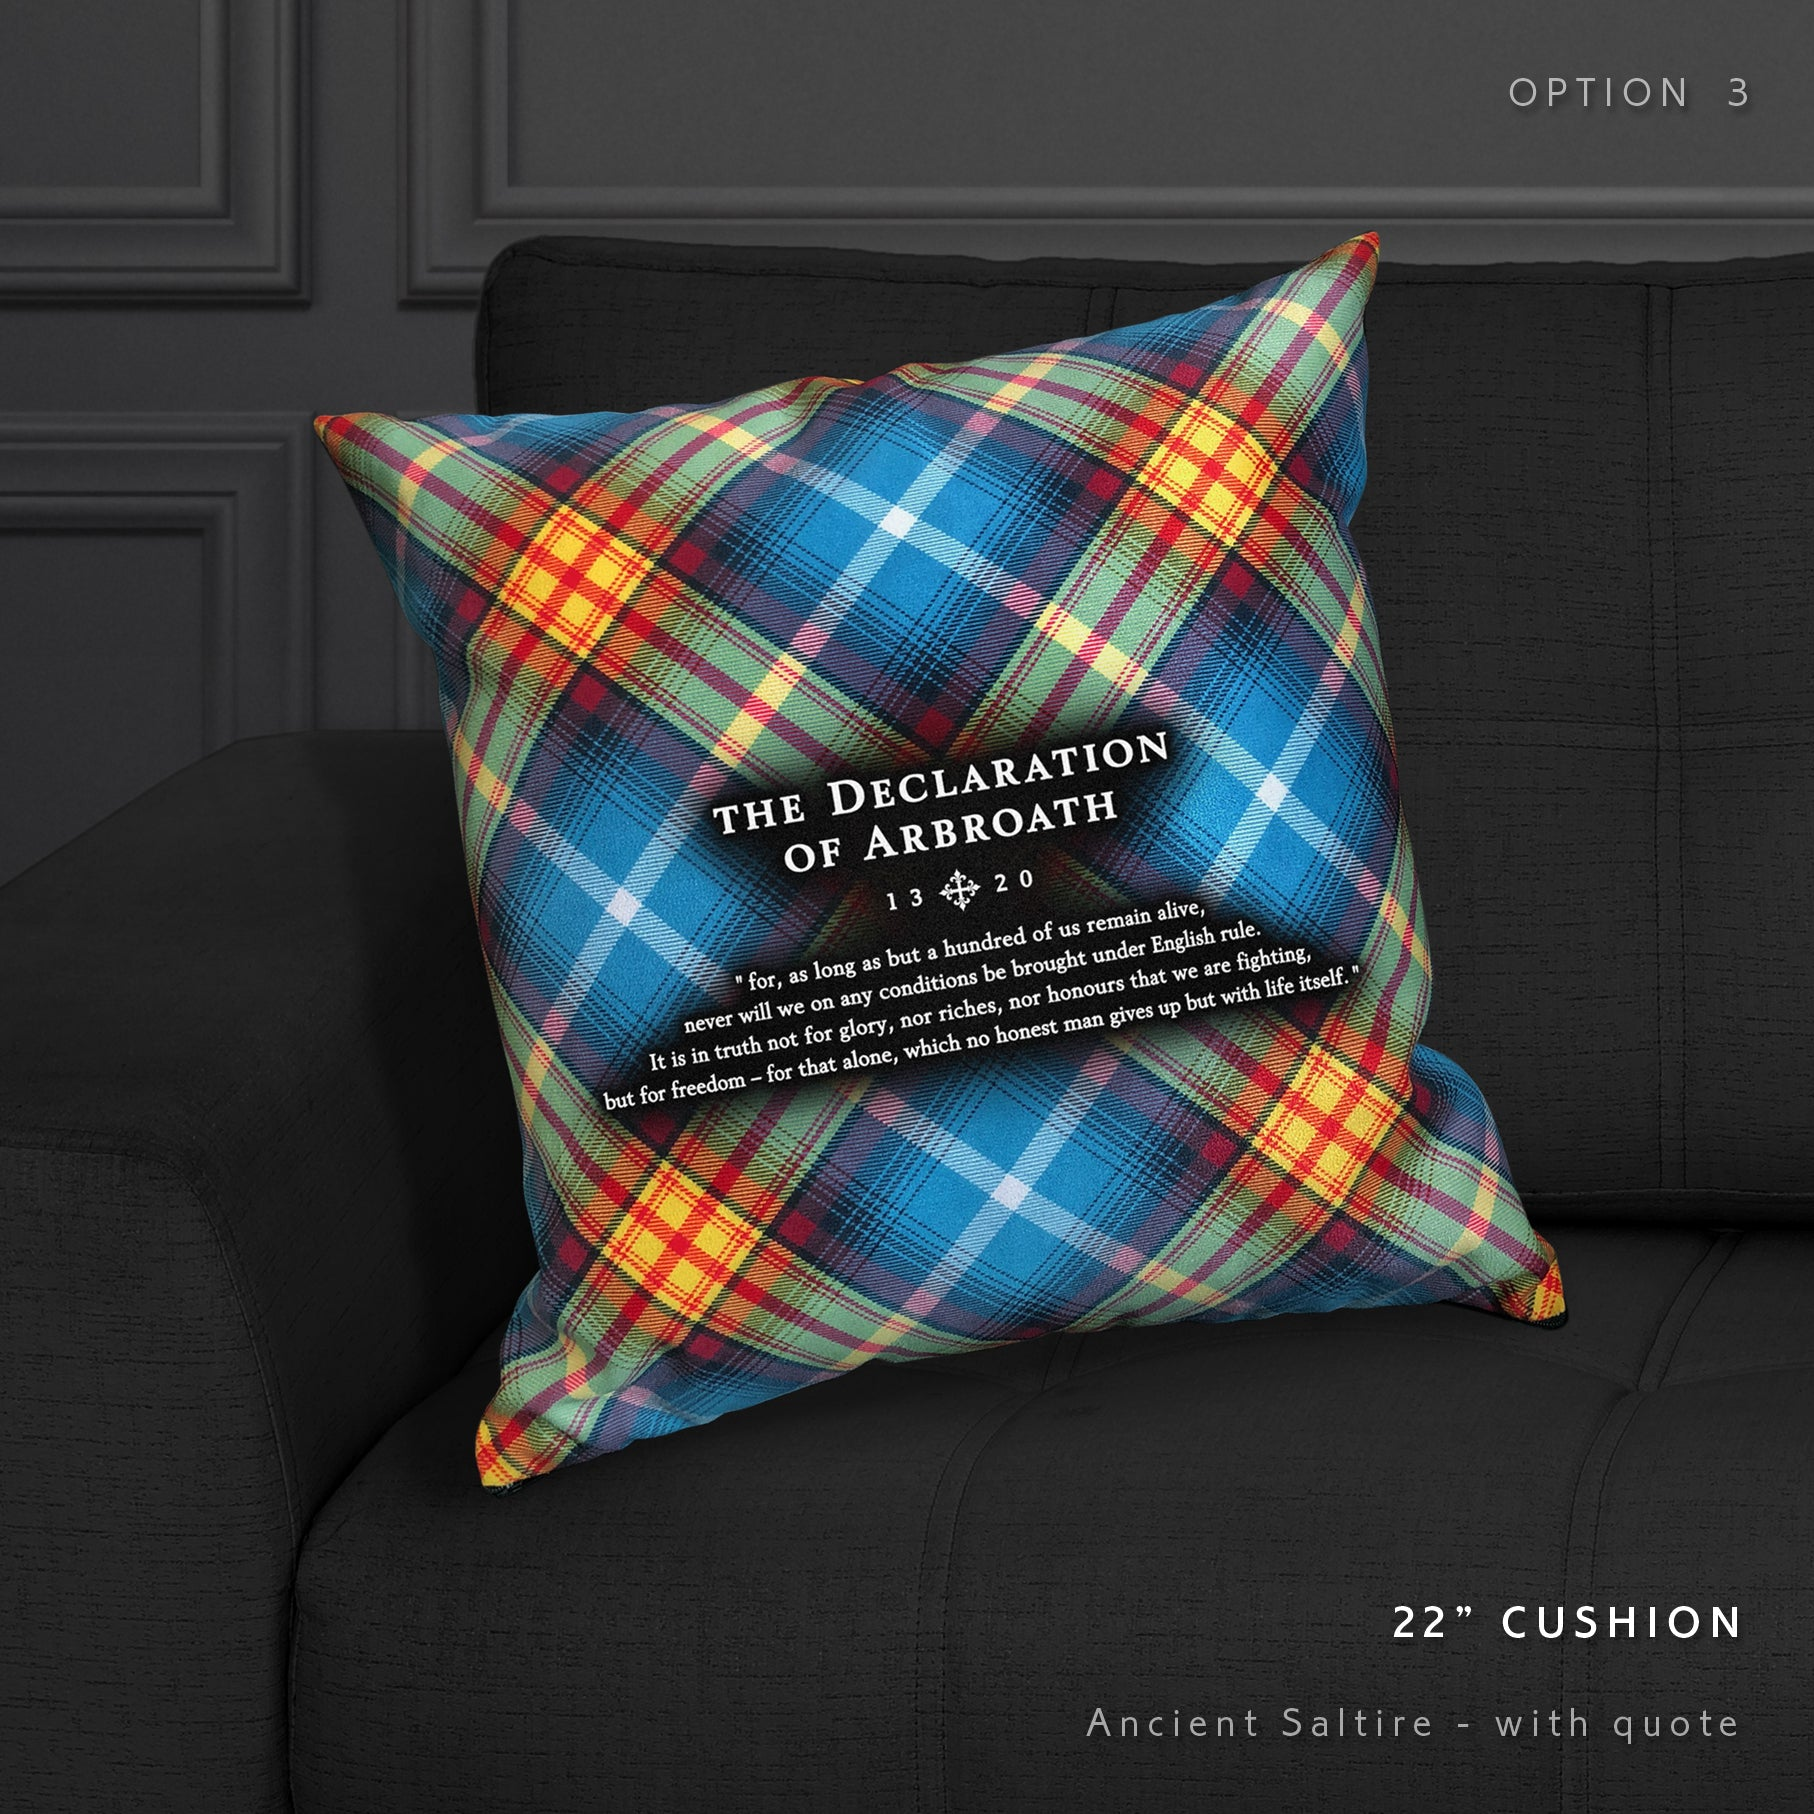 Tartan Arbroath Declaration cushion